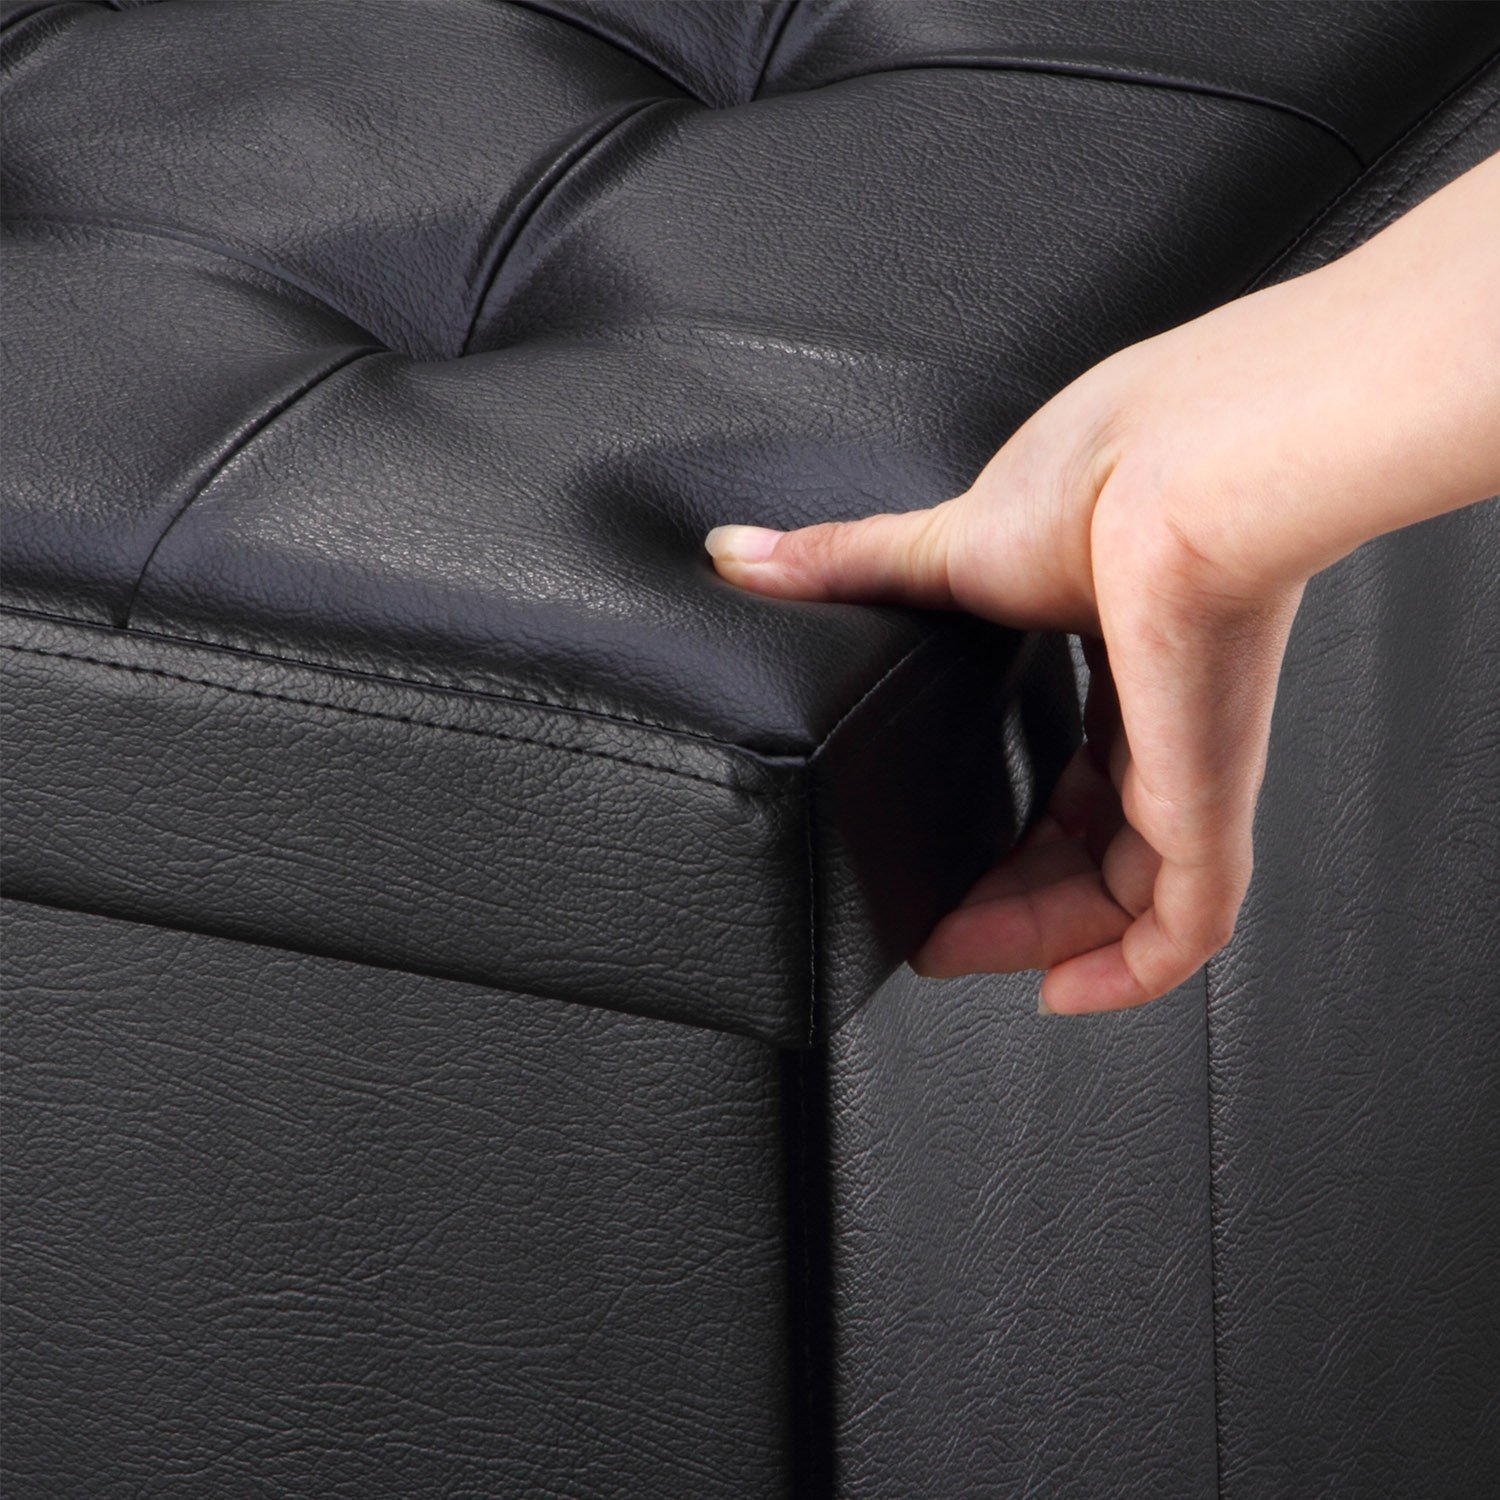 Ollieroo Faux Leather Folding Storage Ottoman Bench Foot Rest Stool Seat Black 30''X15''X15'' by Ollieroo (Image #4)